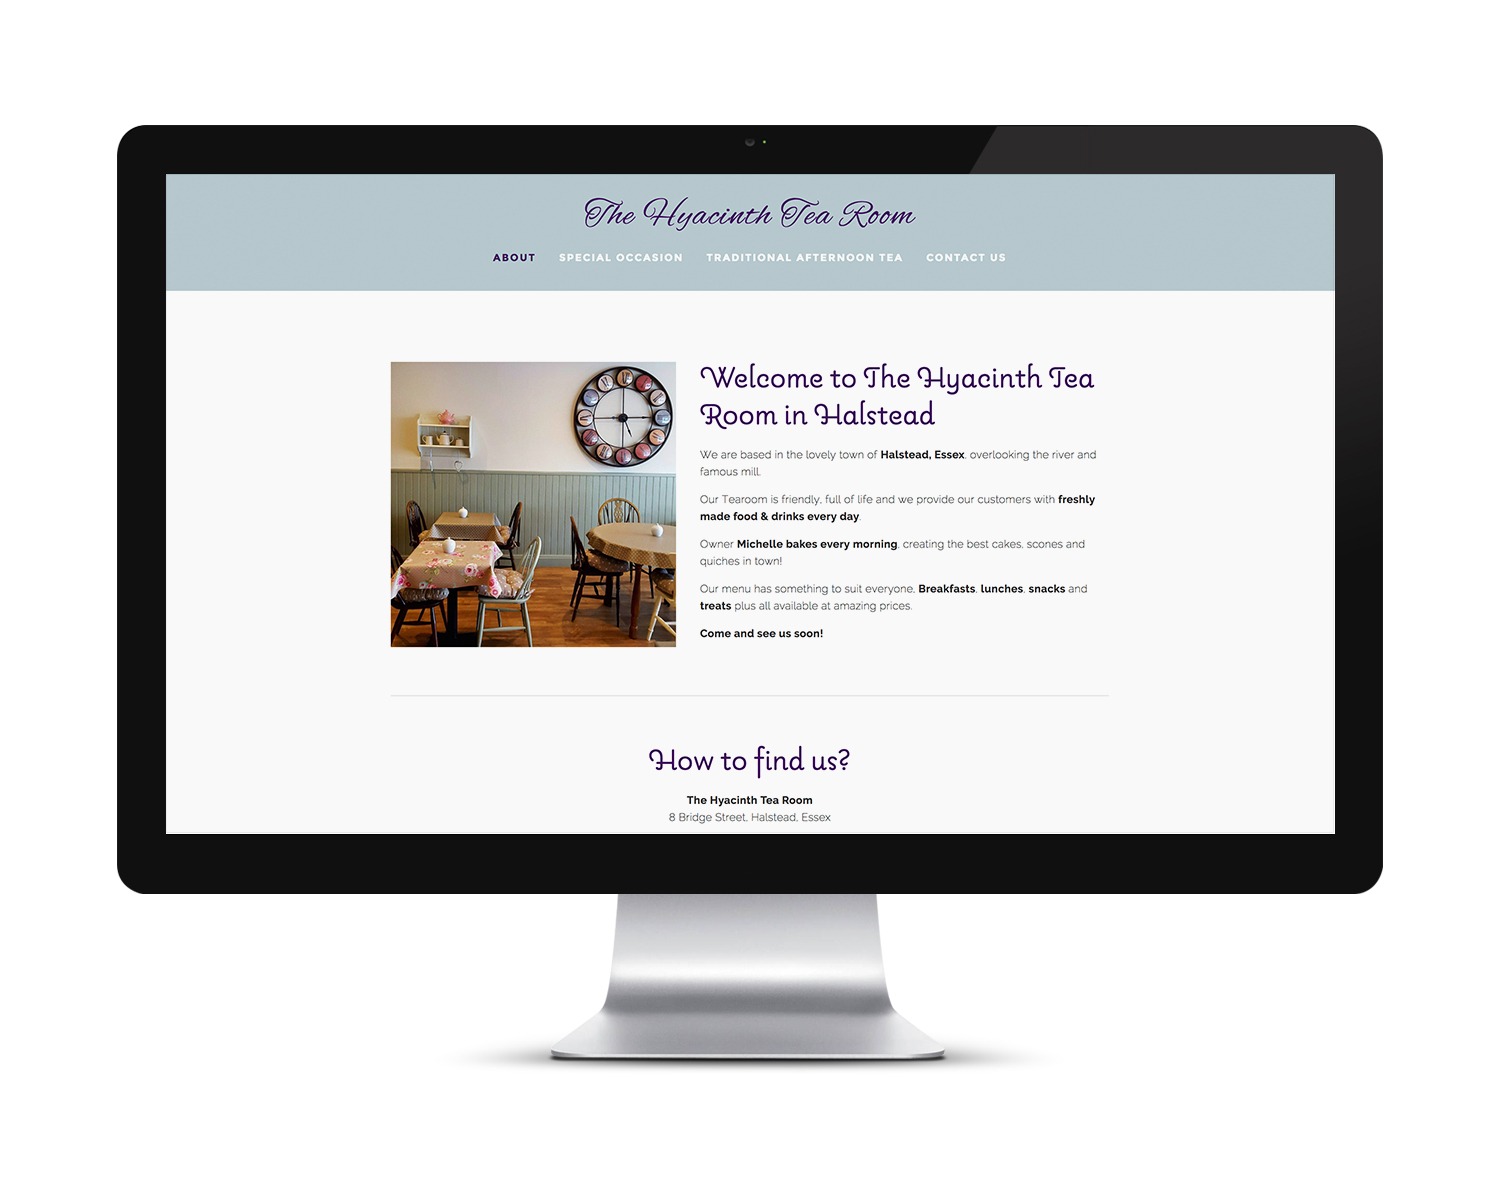 Home page design for The Hyacinth Tearoom, Halstead at Launch.